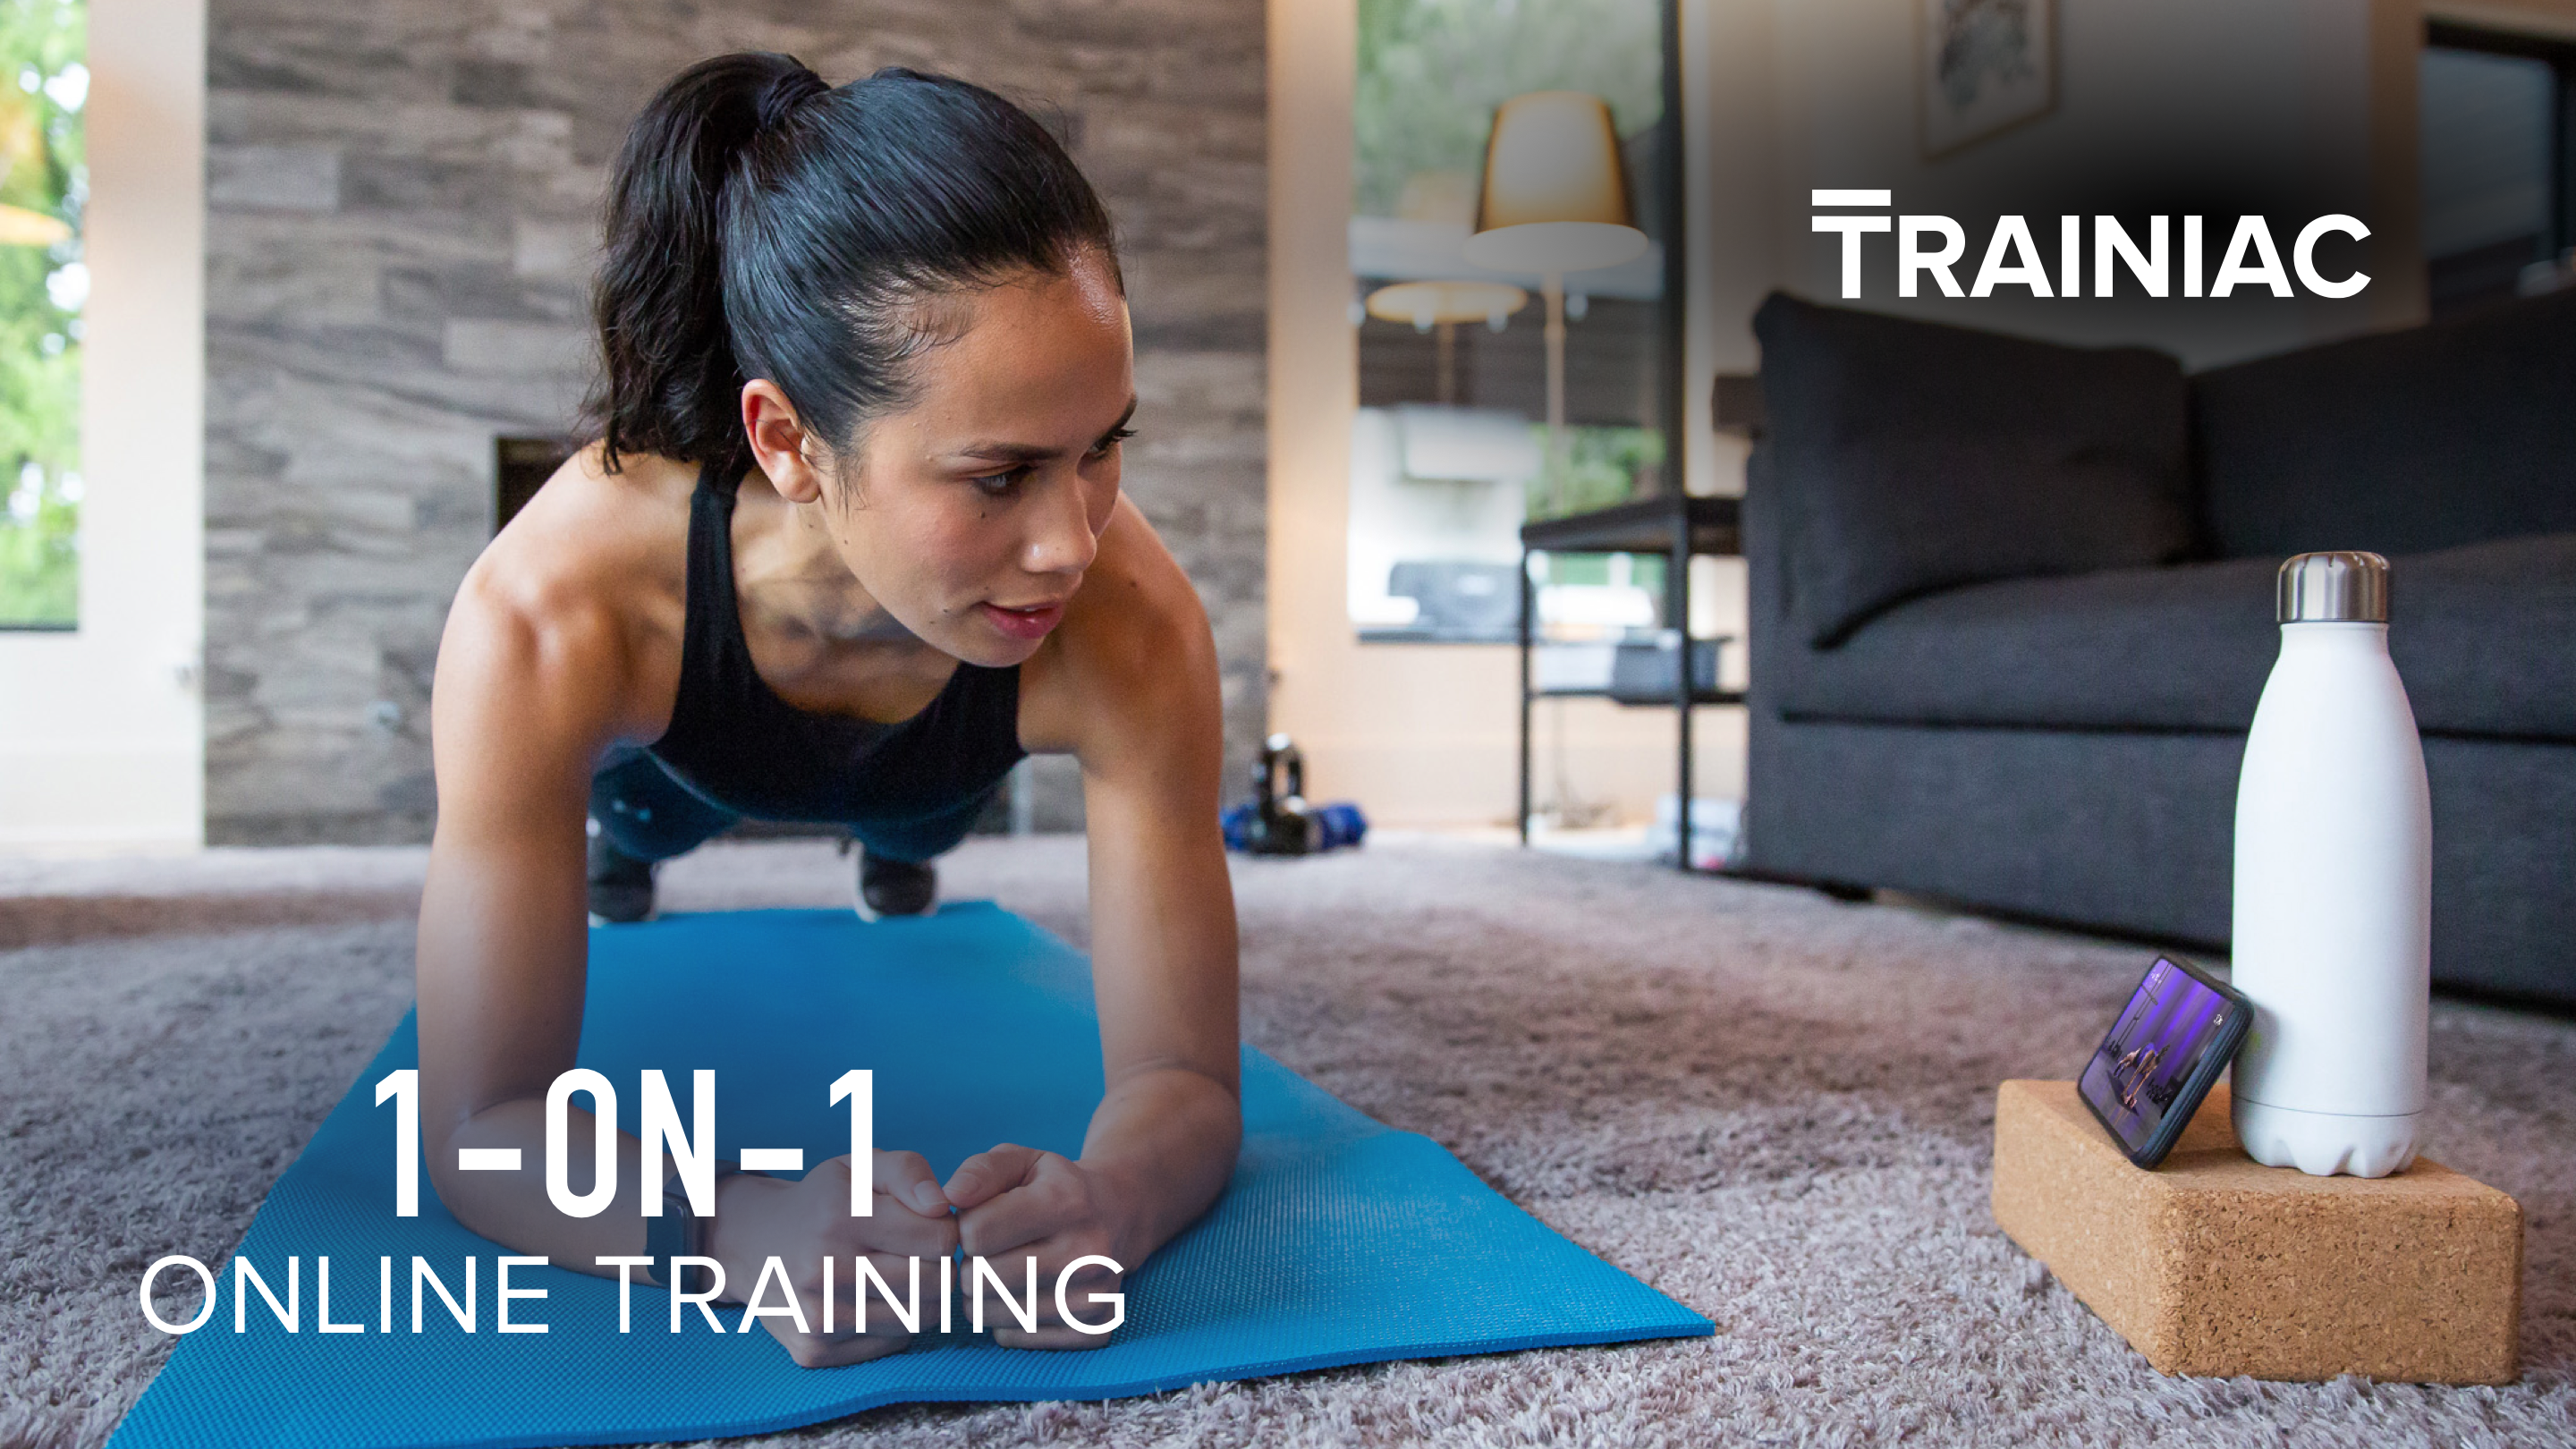 Trainiac: 1-on-1 Online Fitness Coaching